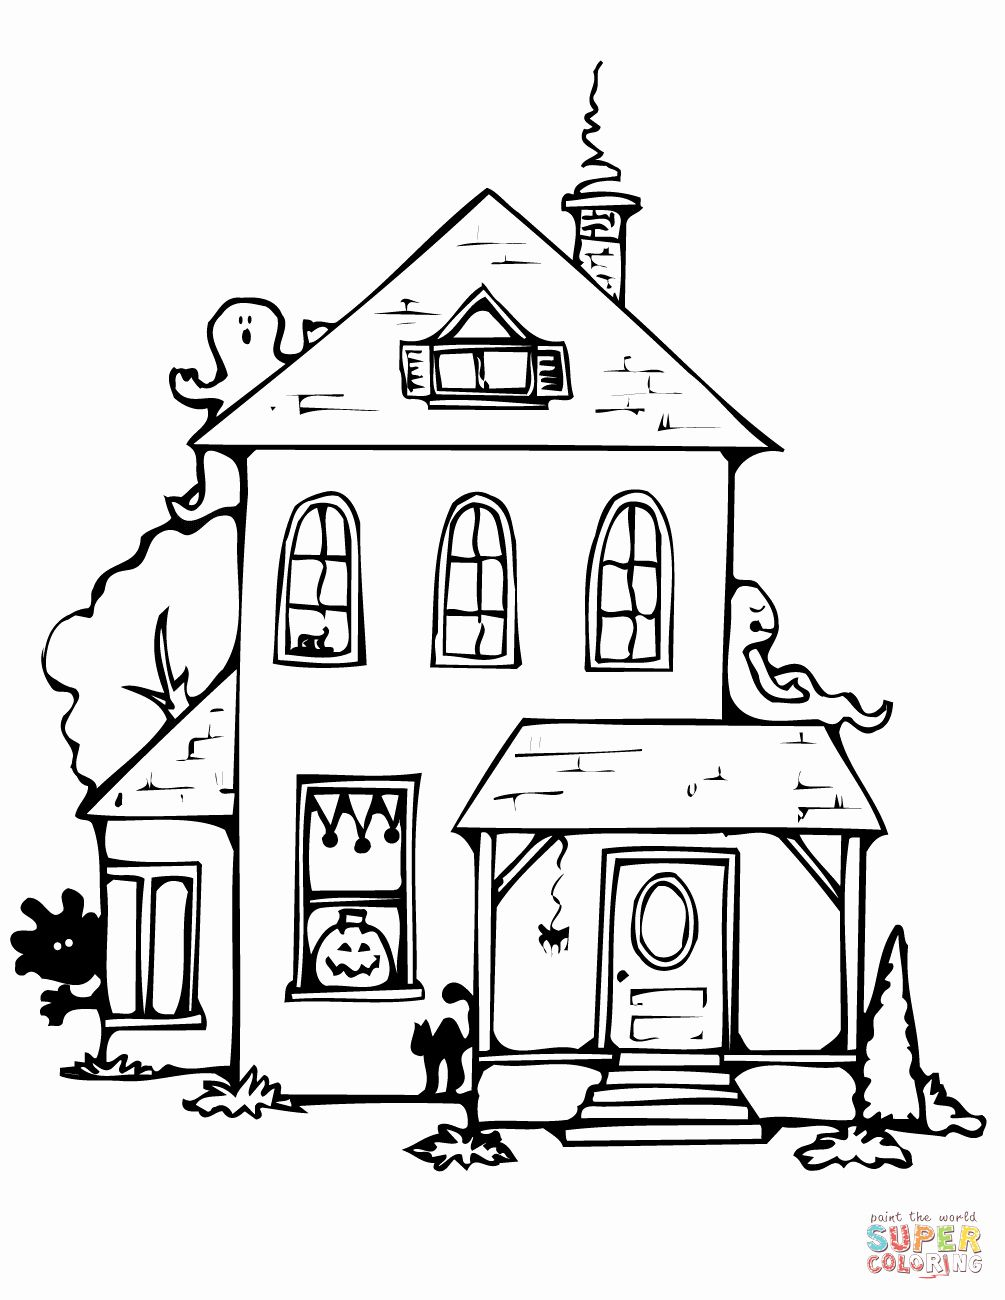 Haunted House Coloring Page Luxury Haunted House Coloring Page House Colouring Pages Easy Haunted House Spooky House